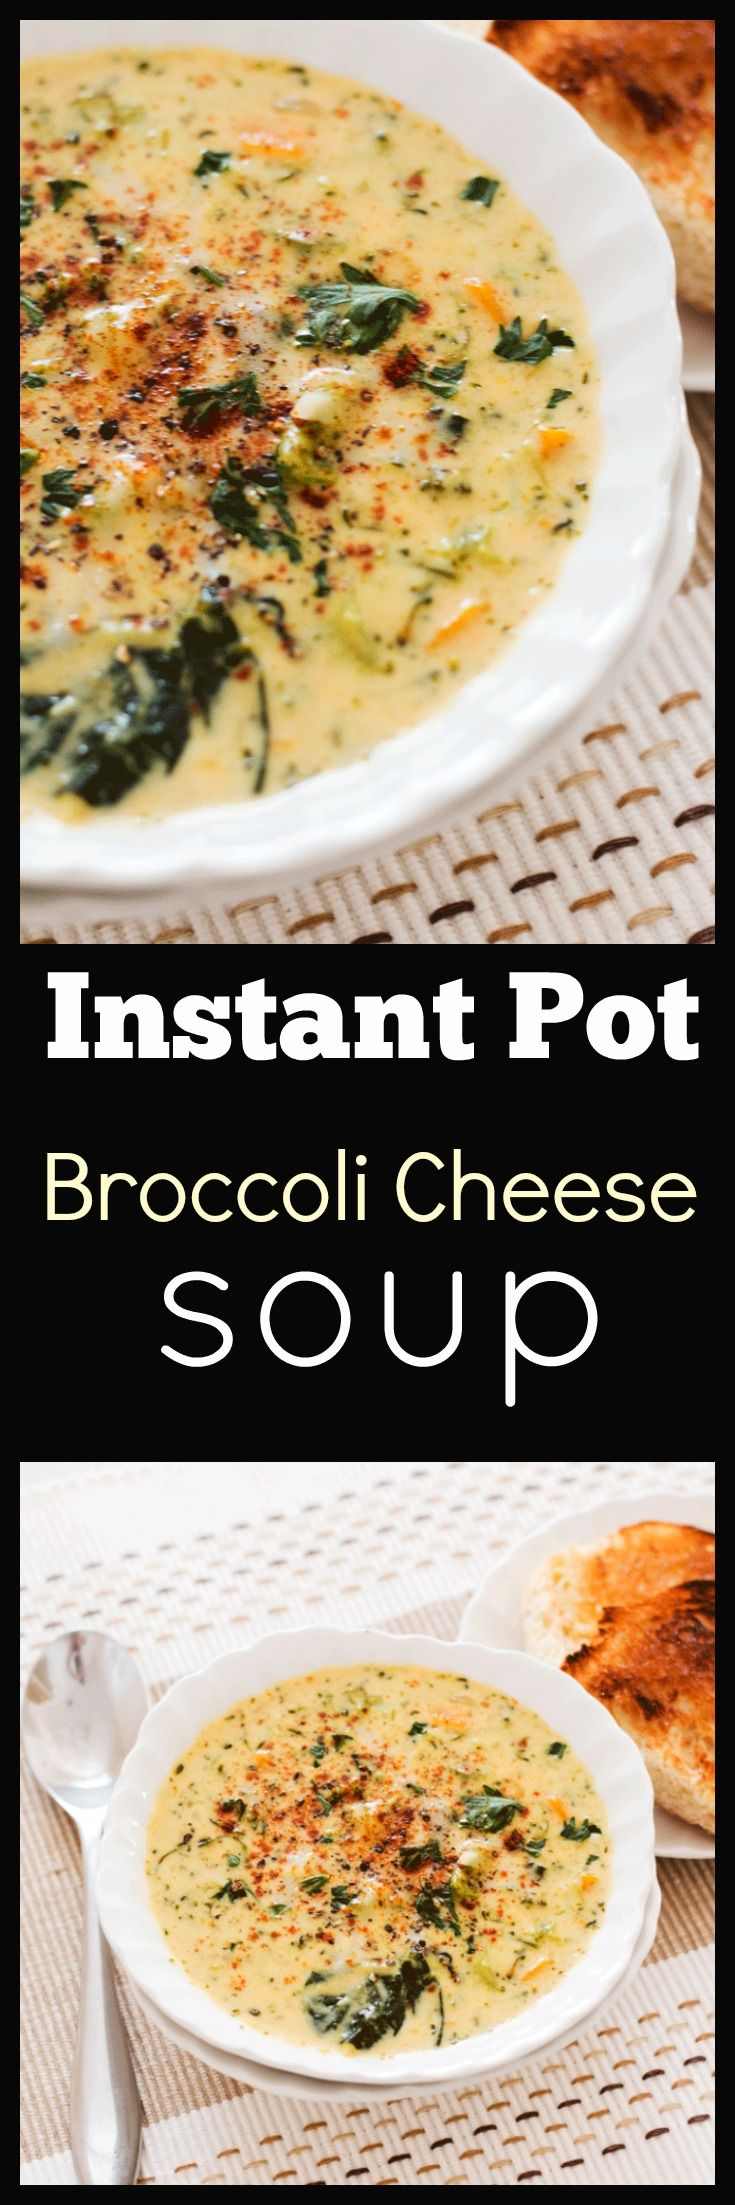 This easy Instant Pot Broccoli Cheese Soup is loaded with veggies, SUPER CHEESY and needs just a handful of ingredients you will already have on hand. Ready in only 20 minutes it makes the perfect midweek bowl of comfort. via @wholefoodbellies